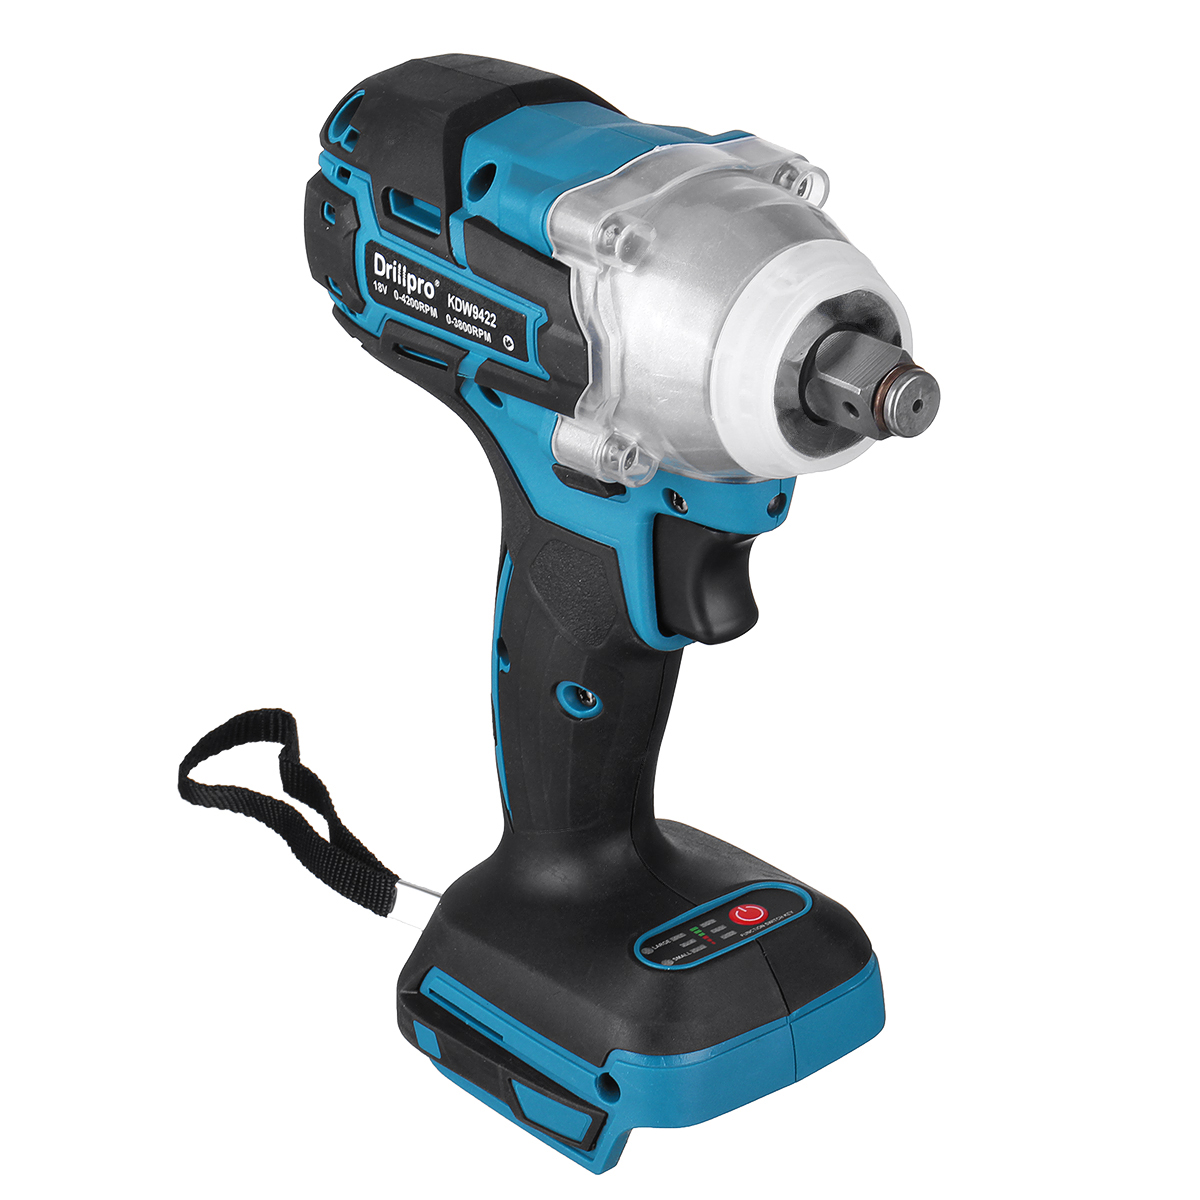 Tools : Drillpro Cordles Brushless Electric Impact Wrench 1 2 inch Power Tool With LED Light for Makita 18V Battery  Tool Only